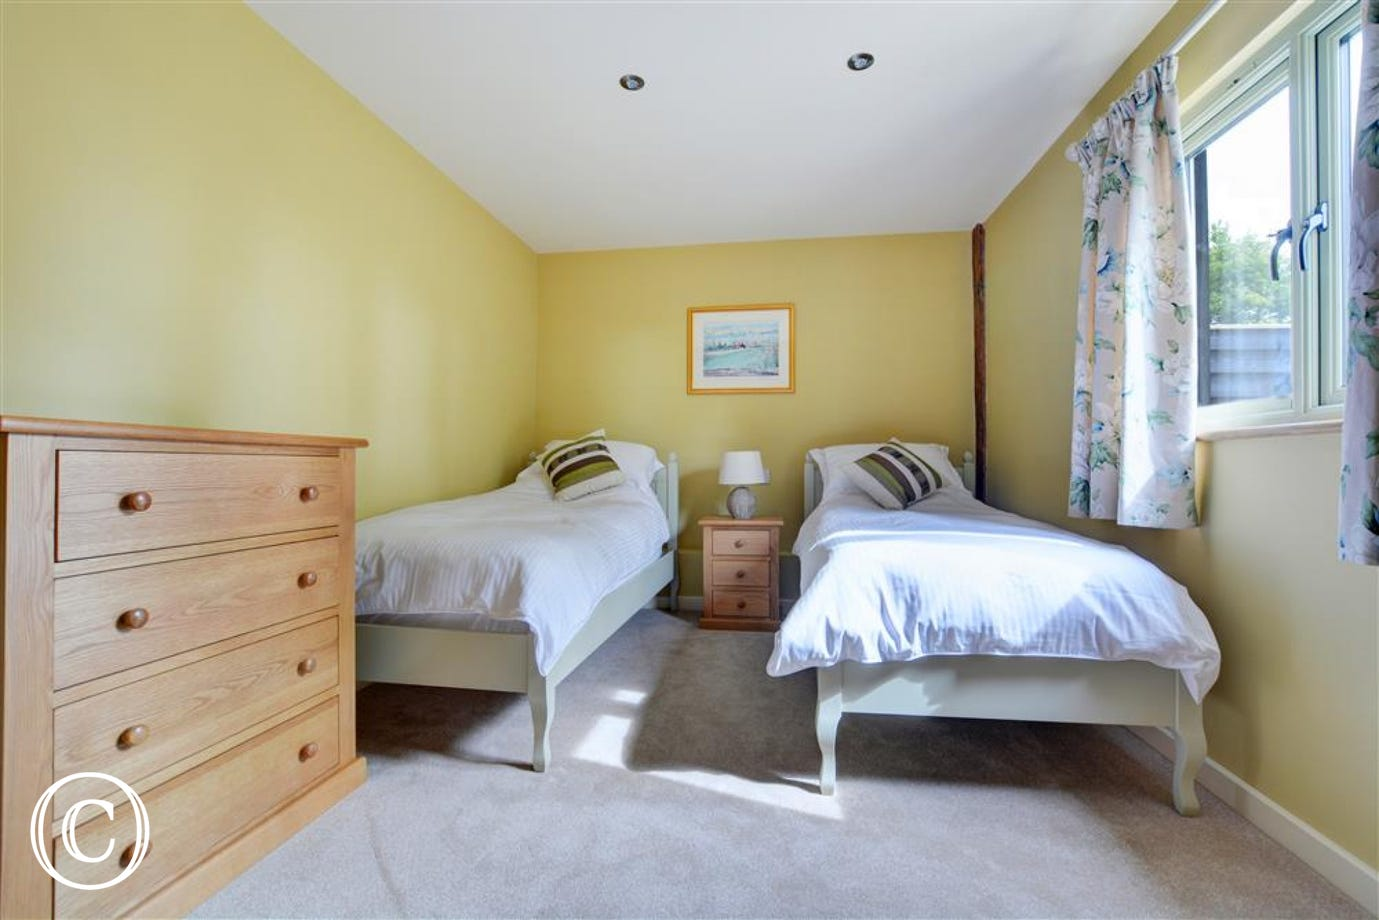 Bedroom two has two single beds